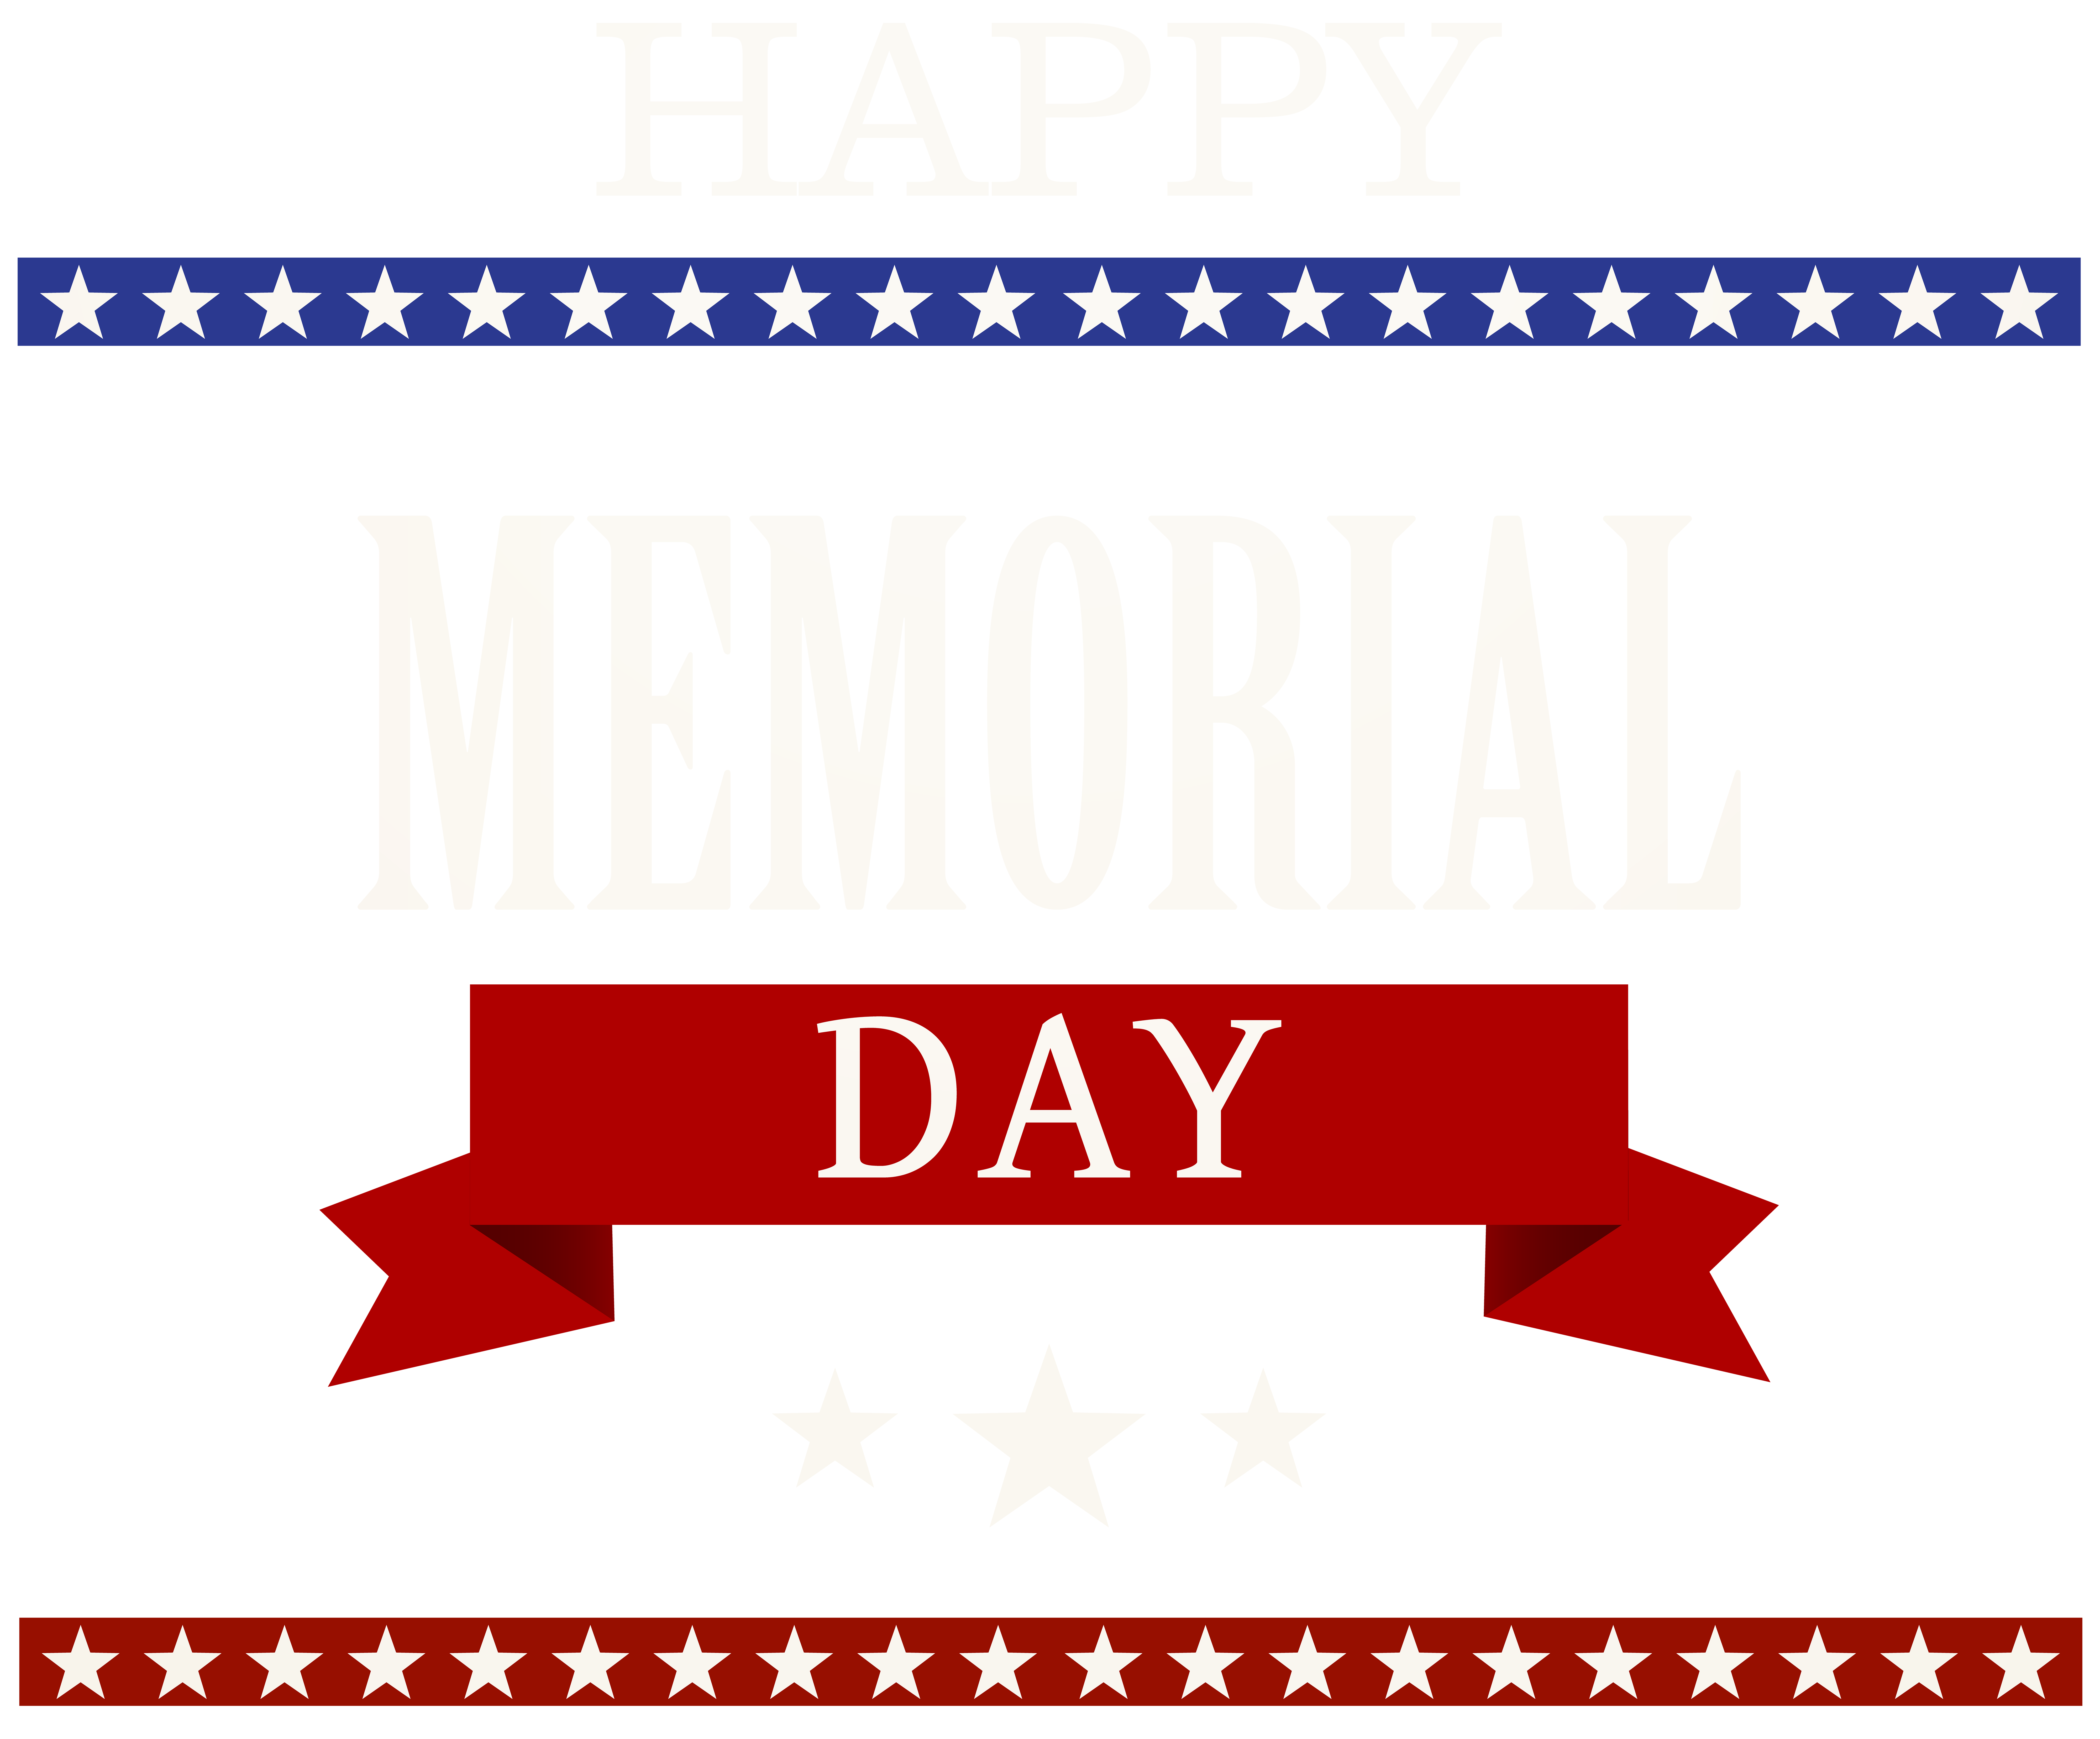 Happy memorial day png. Transparent clip art image